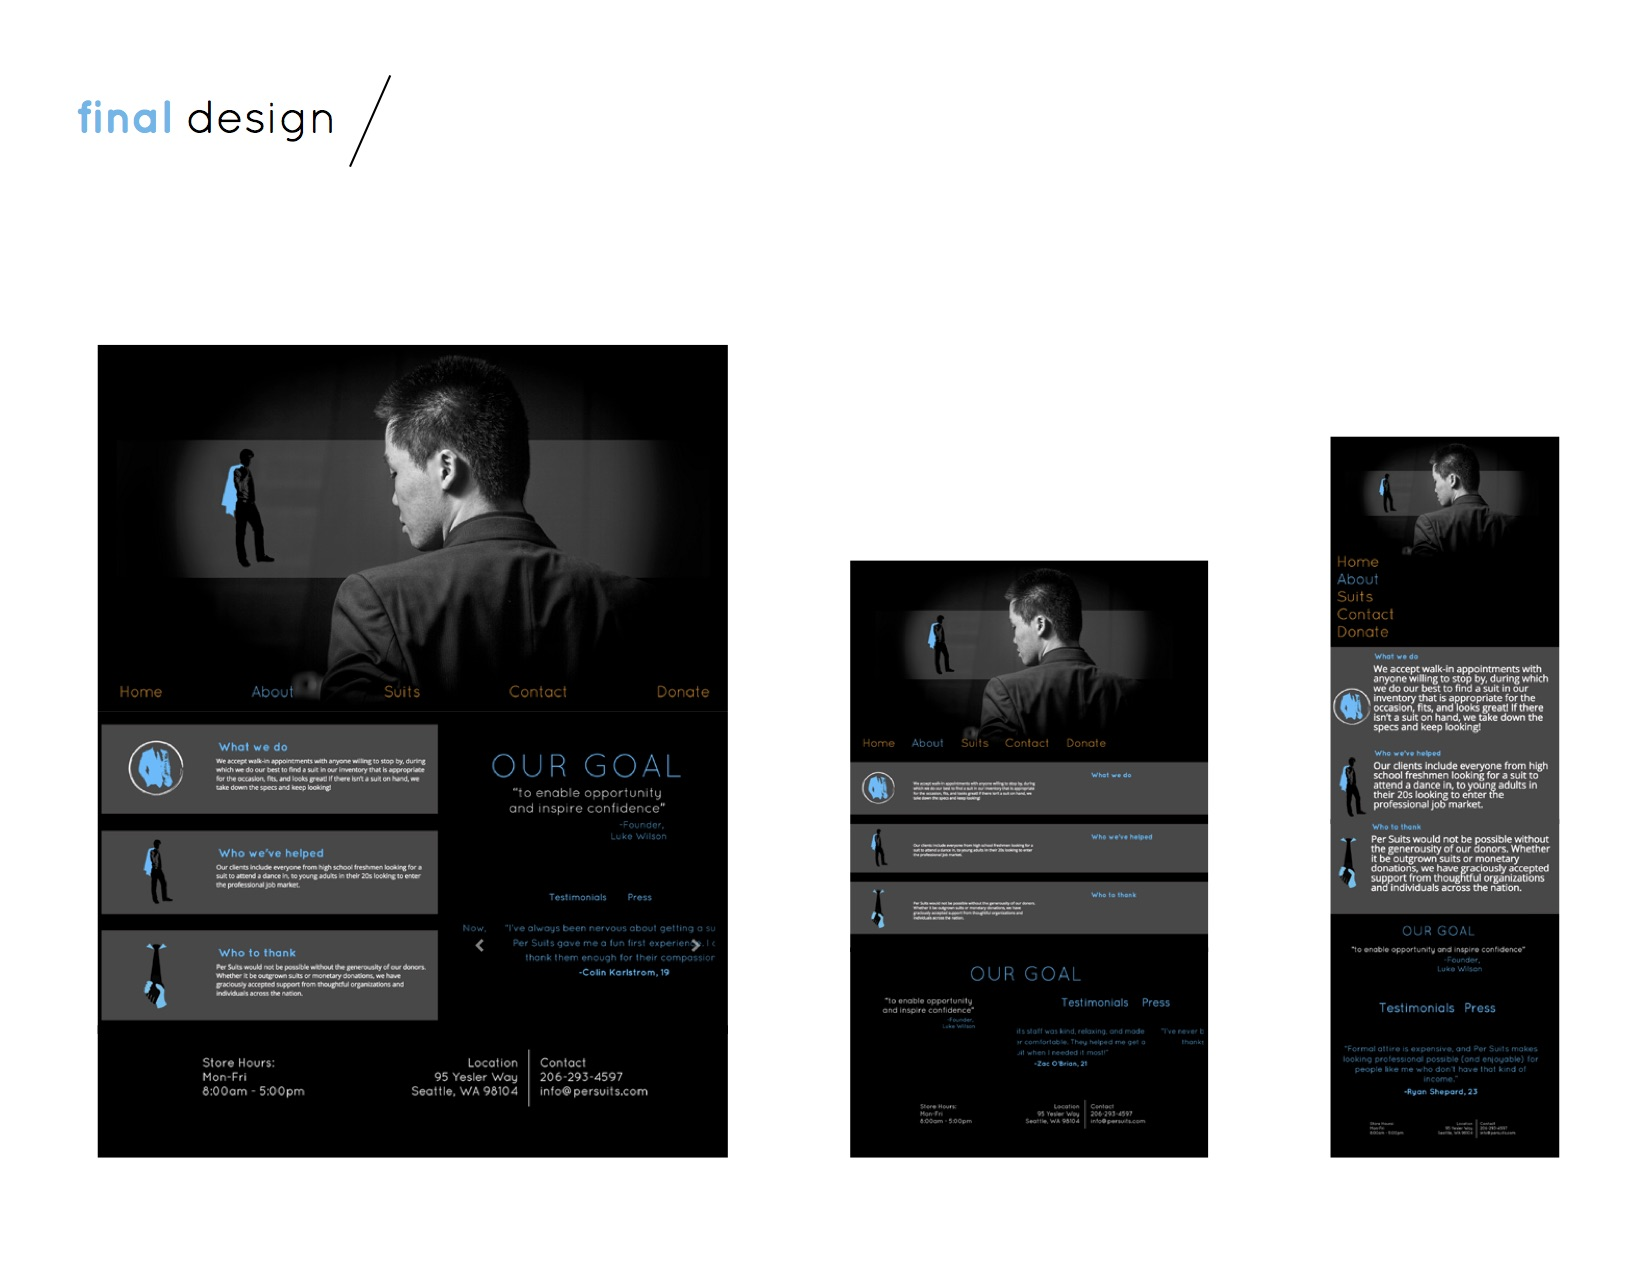 About page final design + viewports